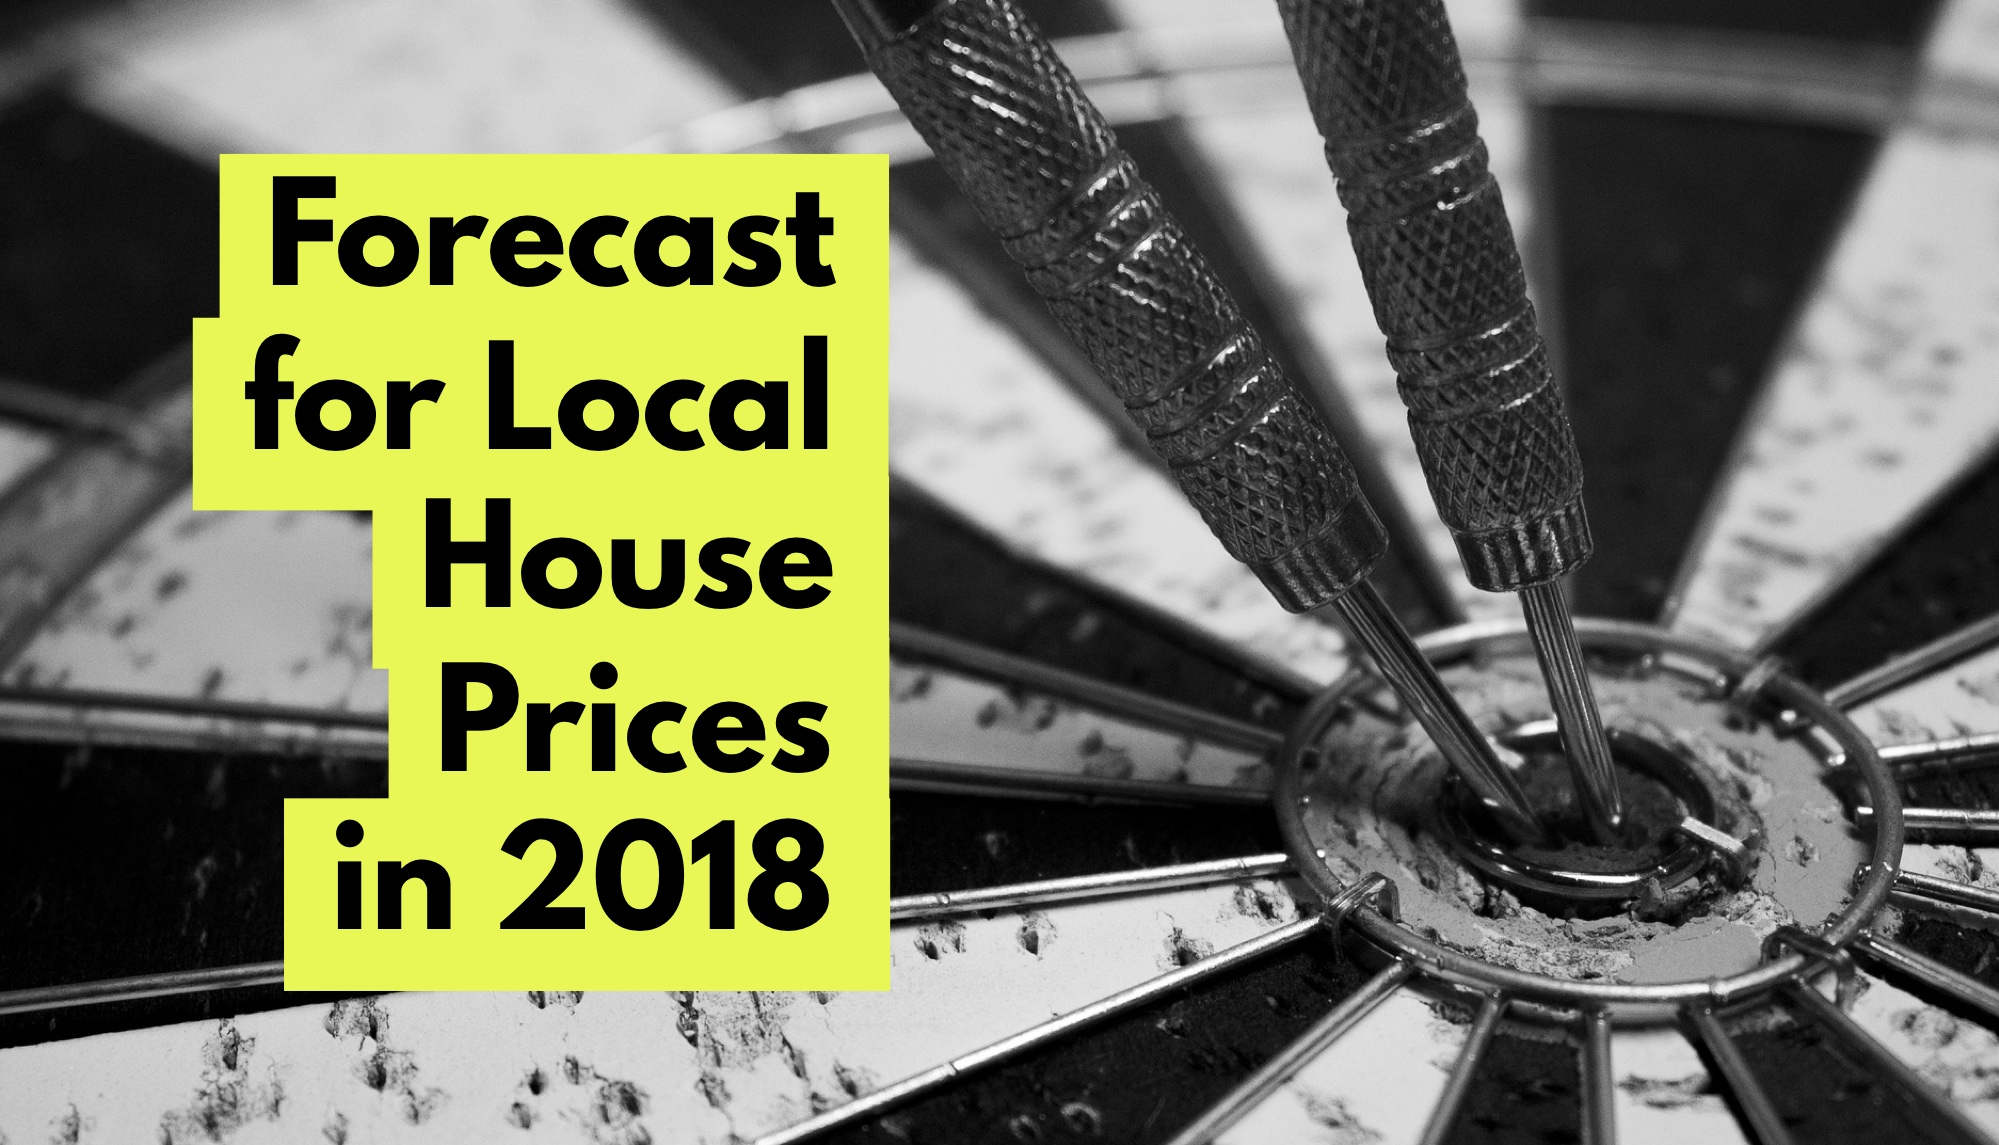 With Canterbury Annual Property Values 4.7% Higher, This is My 2018 Forecast